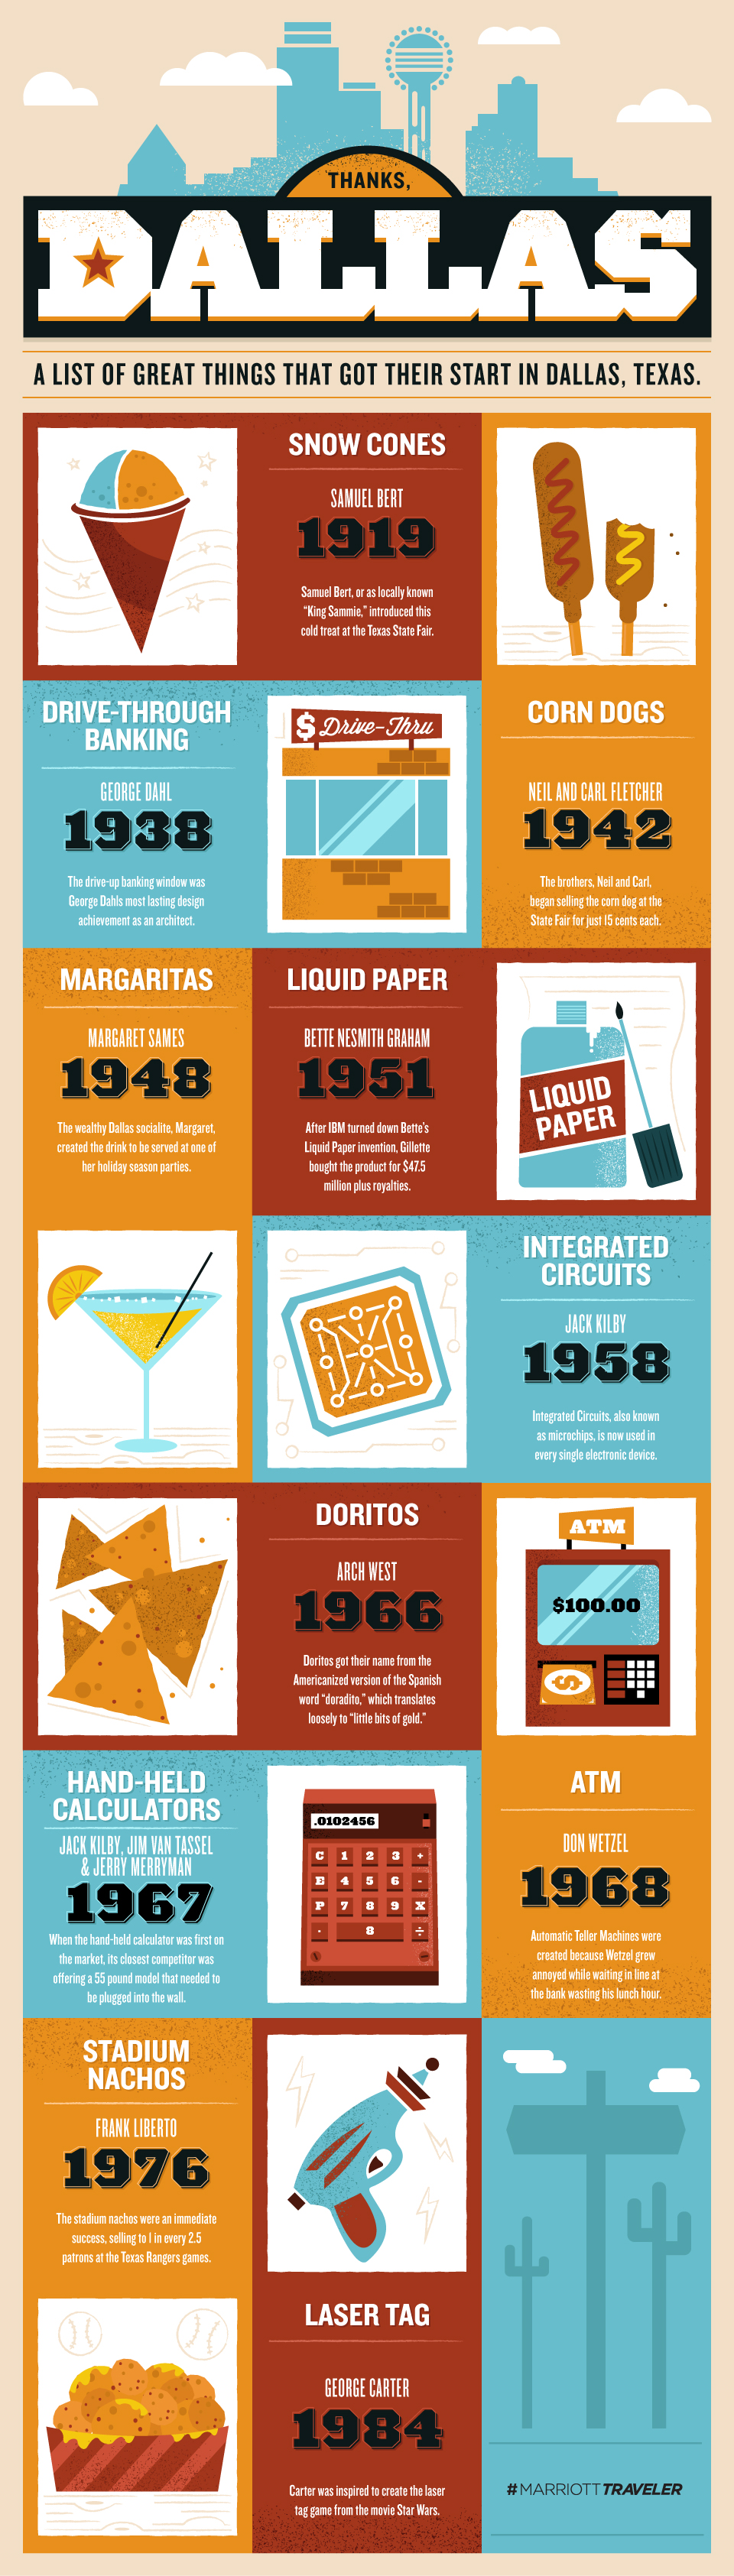 Marriott_Dallas_traveler_Inventions_Thanks_Dallas_Infographic-.jpg